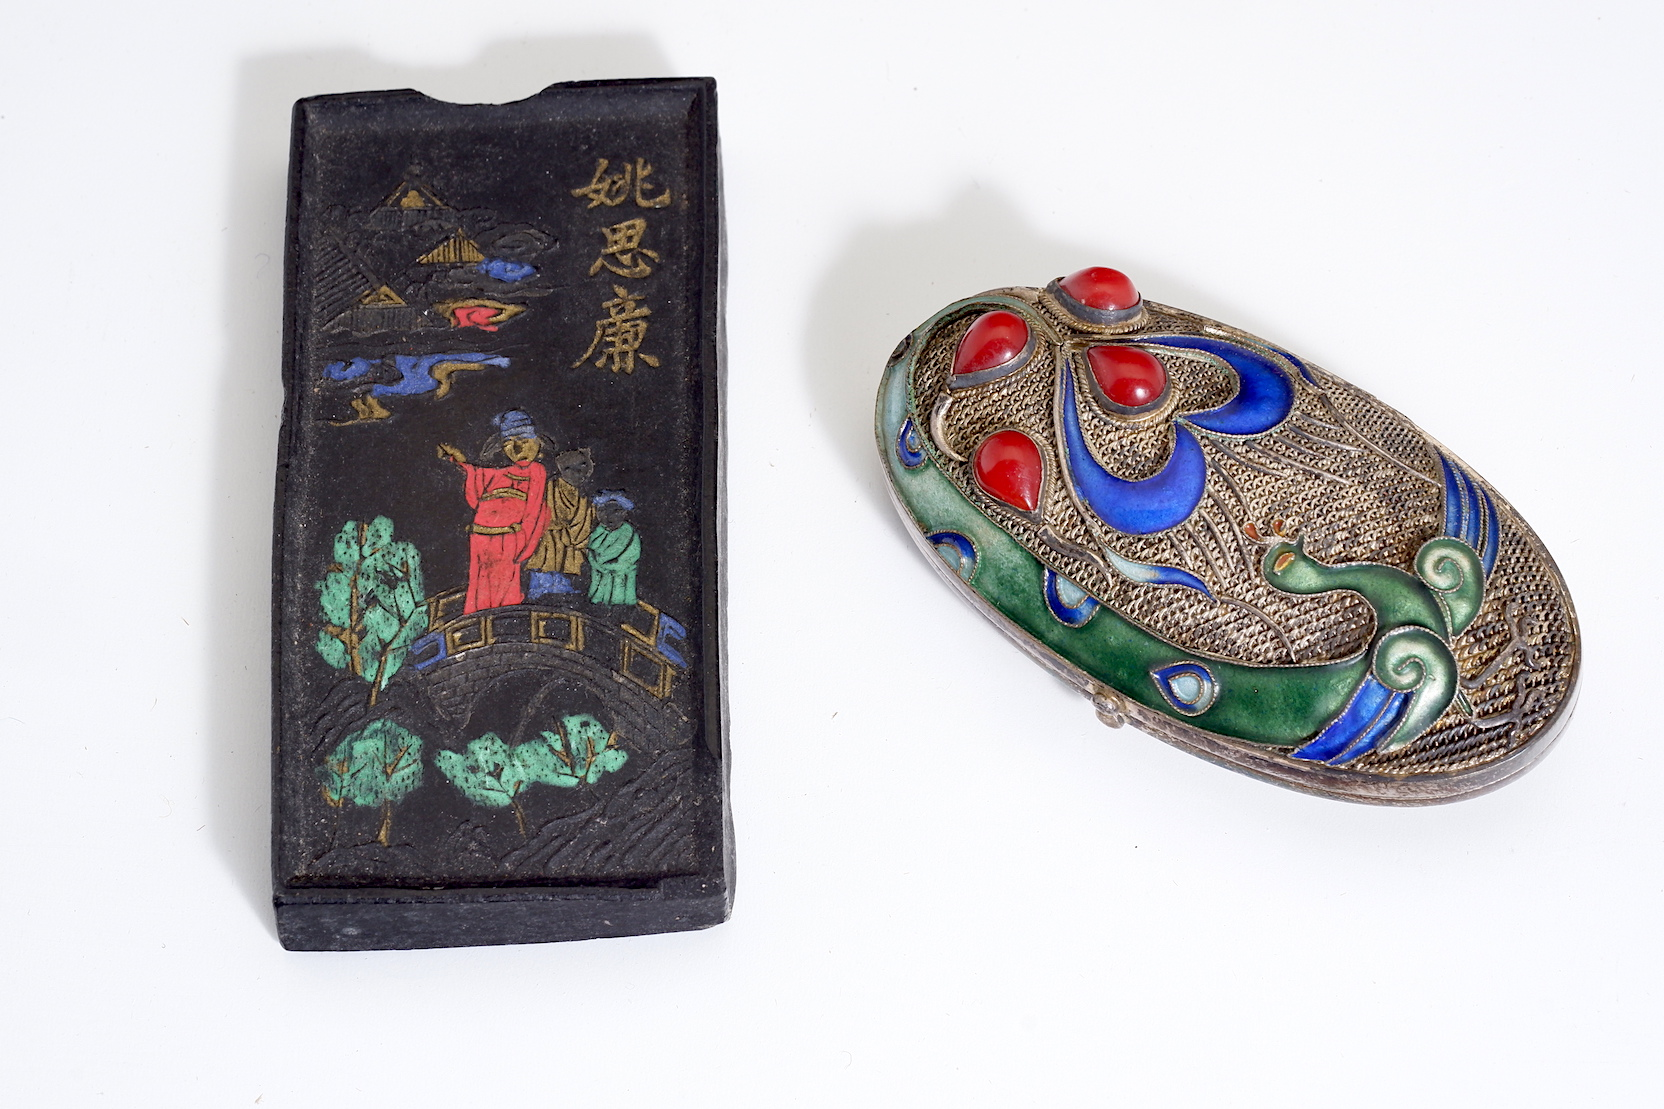 'Chinese Ink Cake and a Silver and Enamel Pill Box'